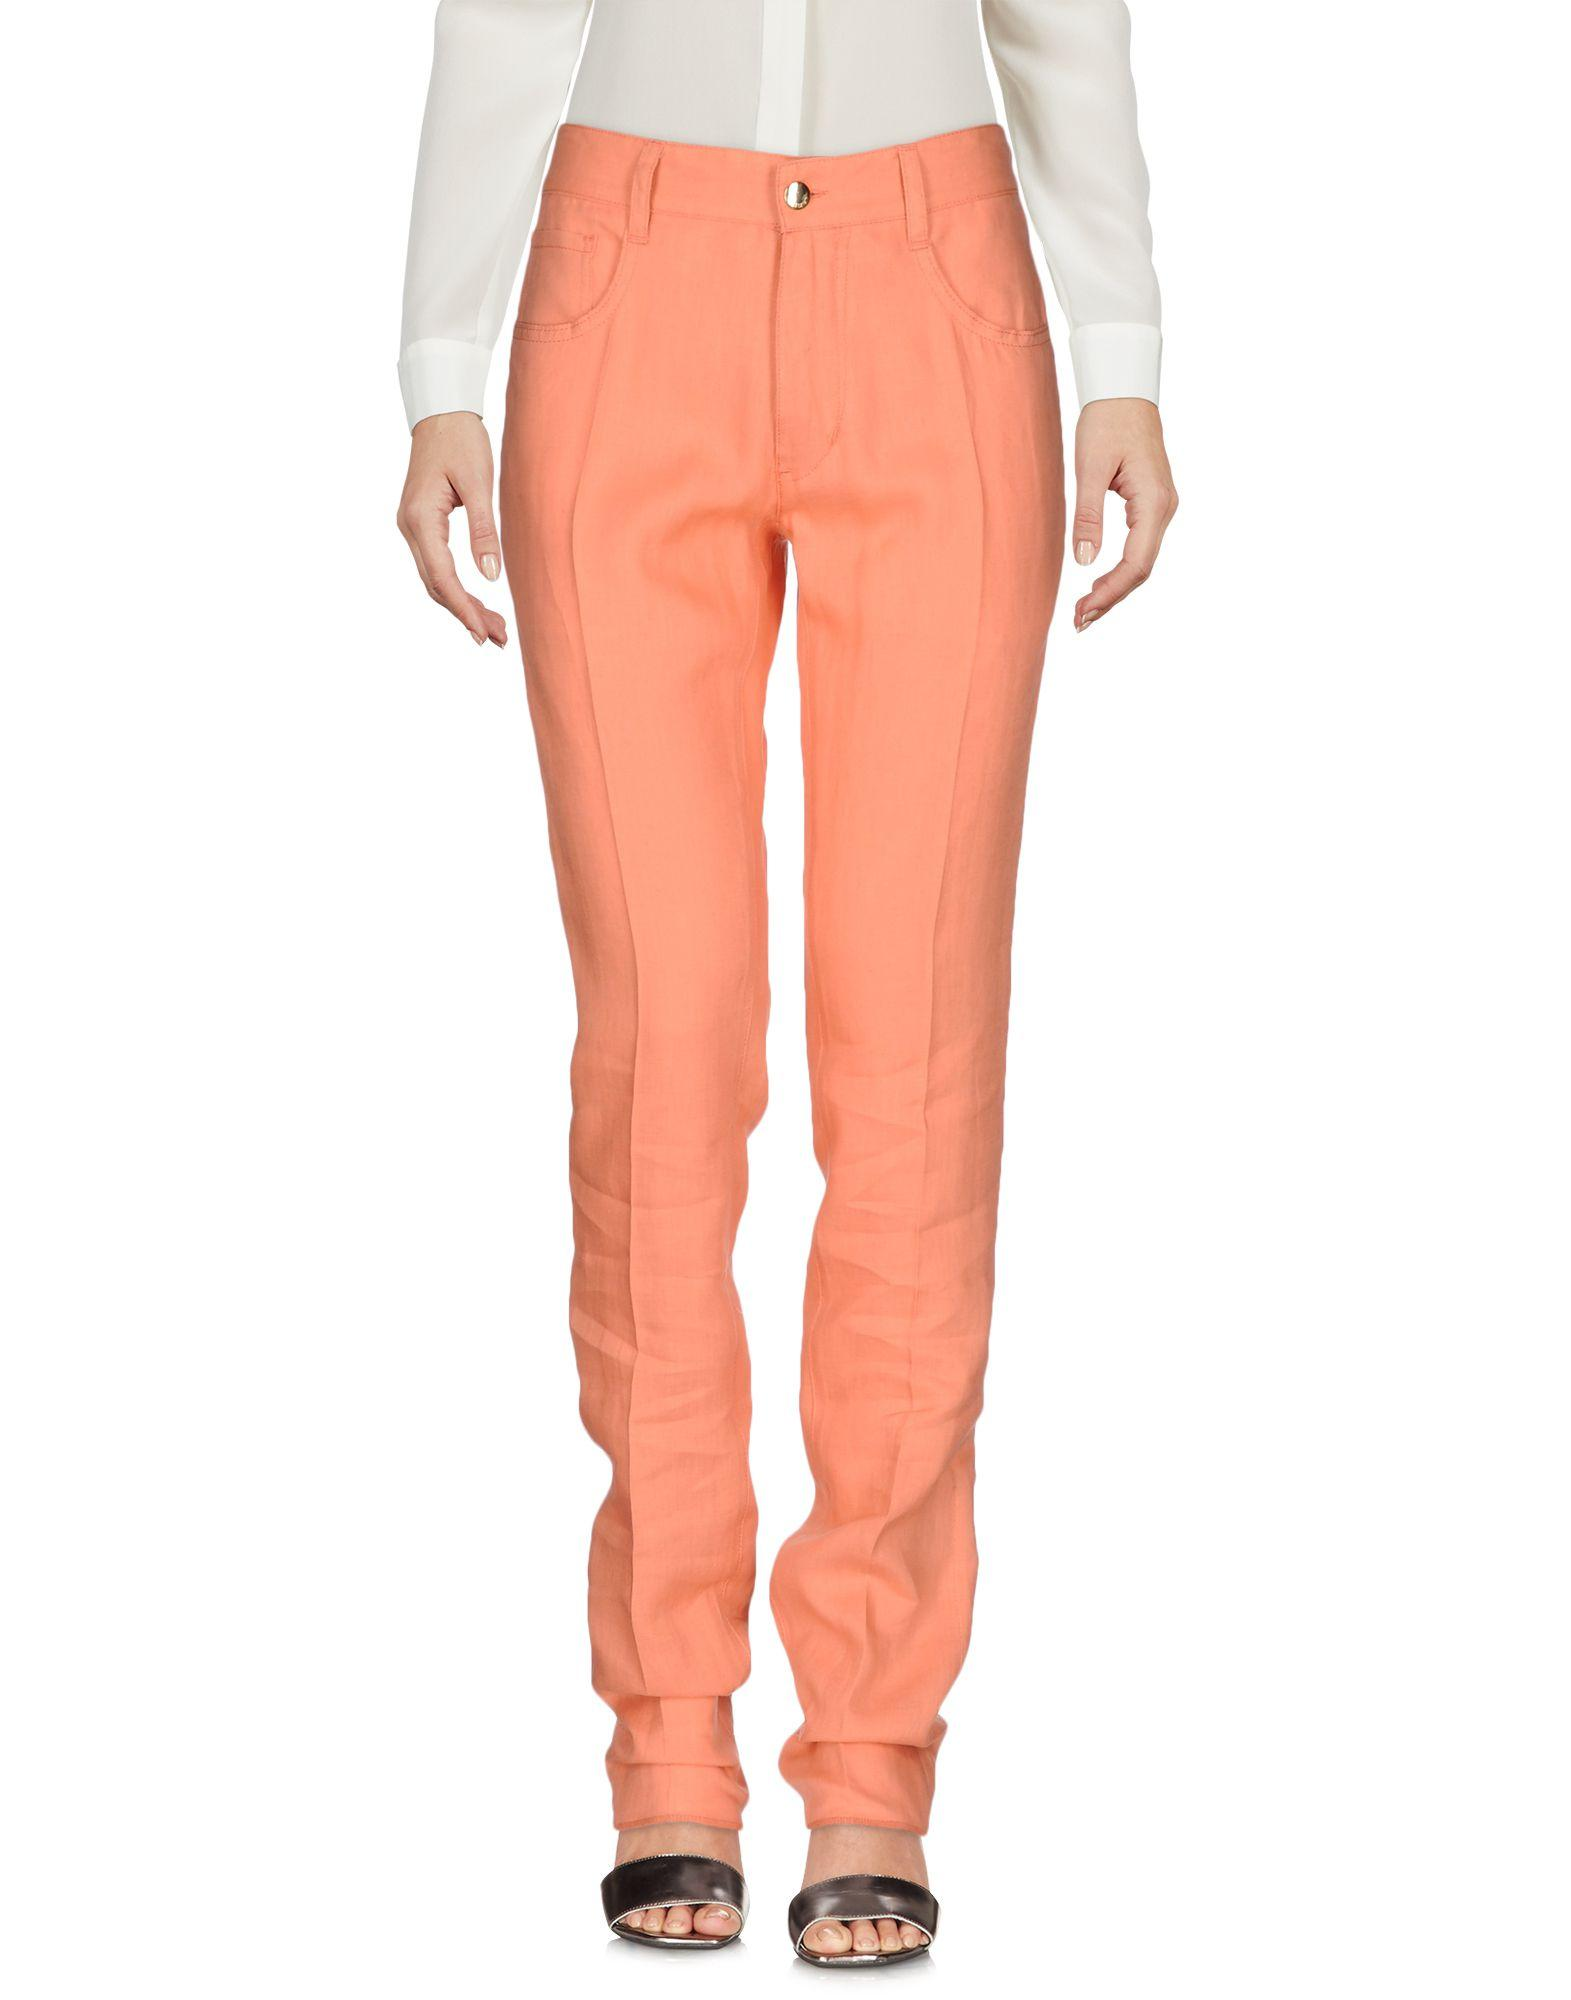 Beautiful  Pakistan Orange Cotton Cigarette Pants For Women  RCPAPantCgtO